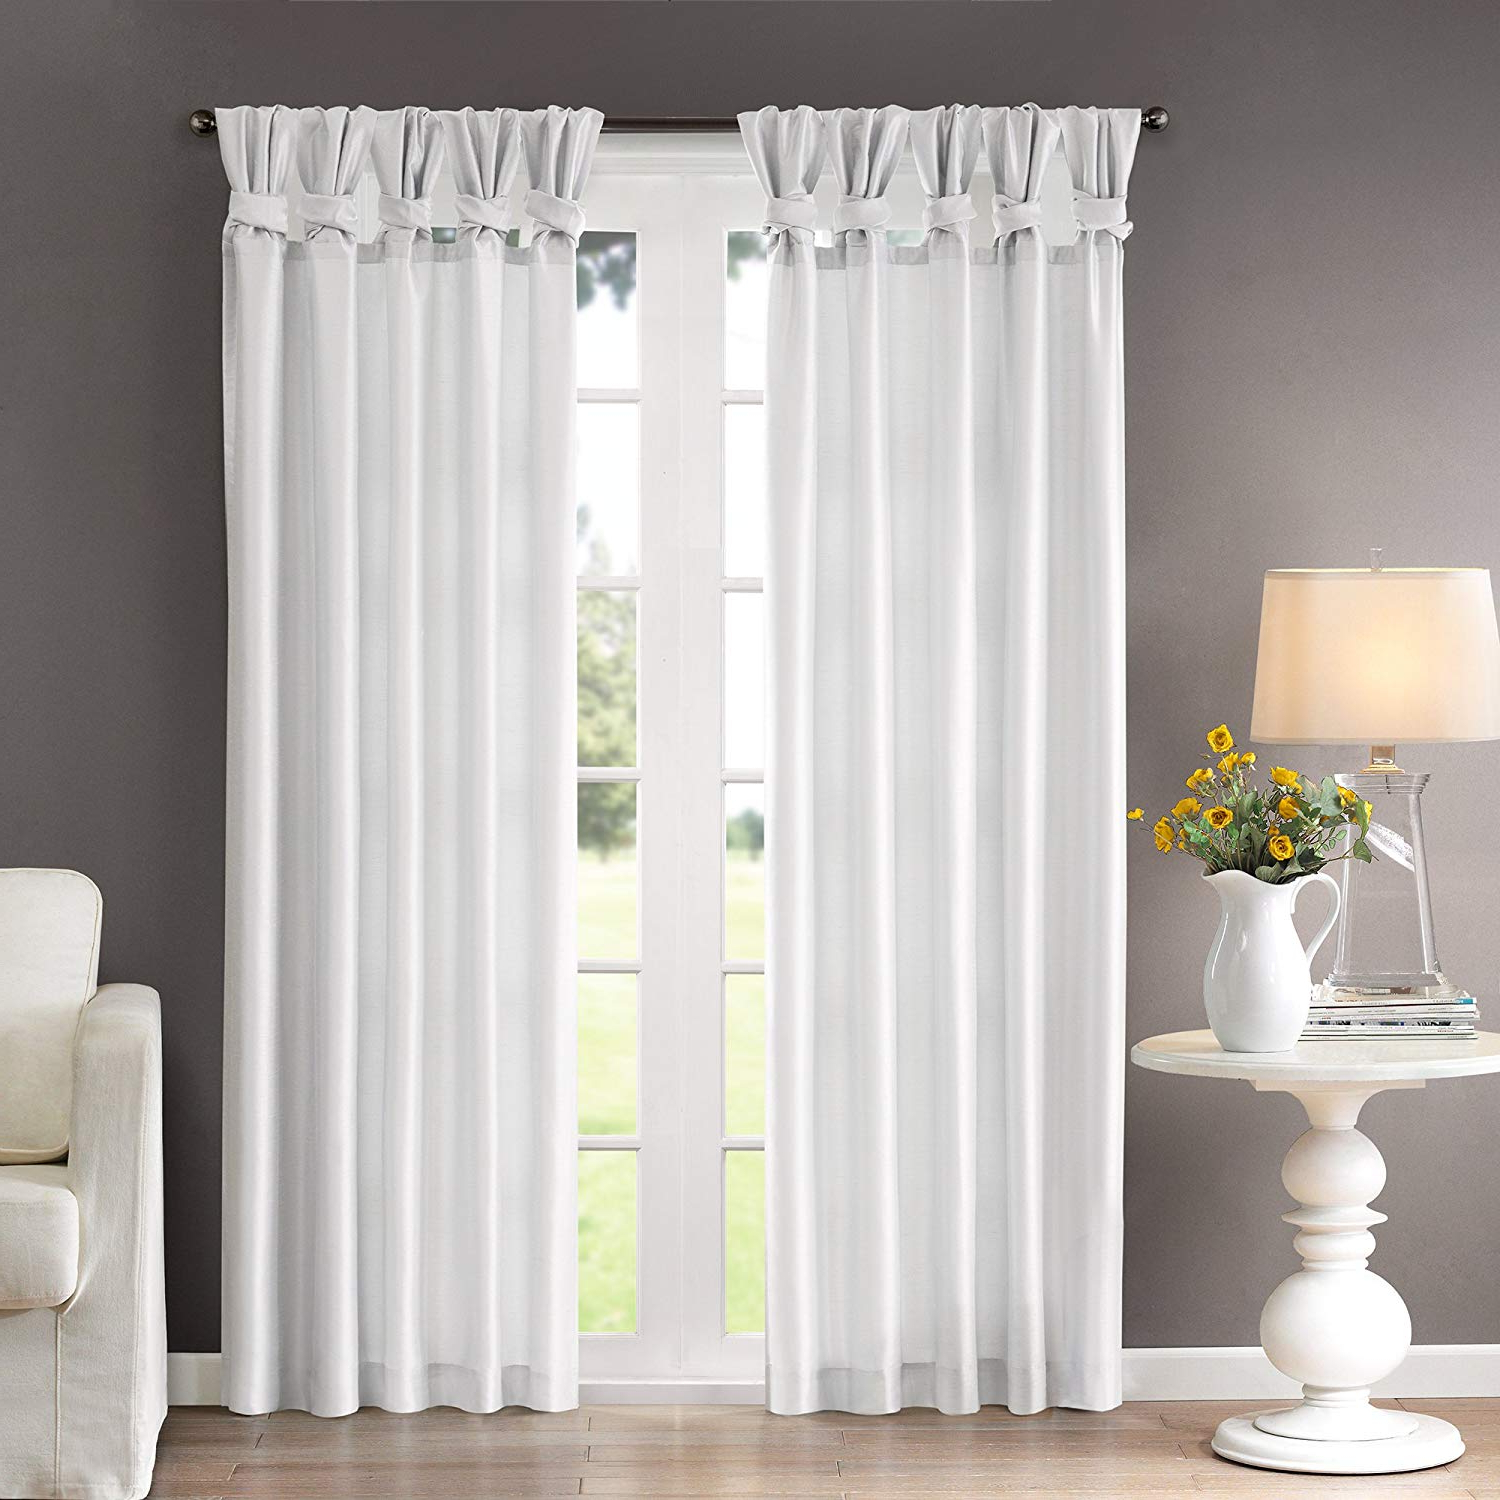 Madison Park Emilia Room Darkening Curtain Diy Twist Tab Window Panel Black Out Drapes For Bedroom And Dorm, 50X95, White For Popular Twisted Tab Lined Single Curtain Panels (View 2 of 20)